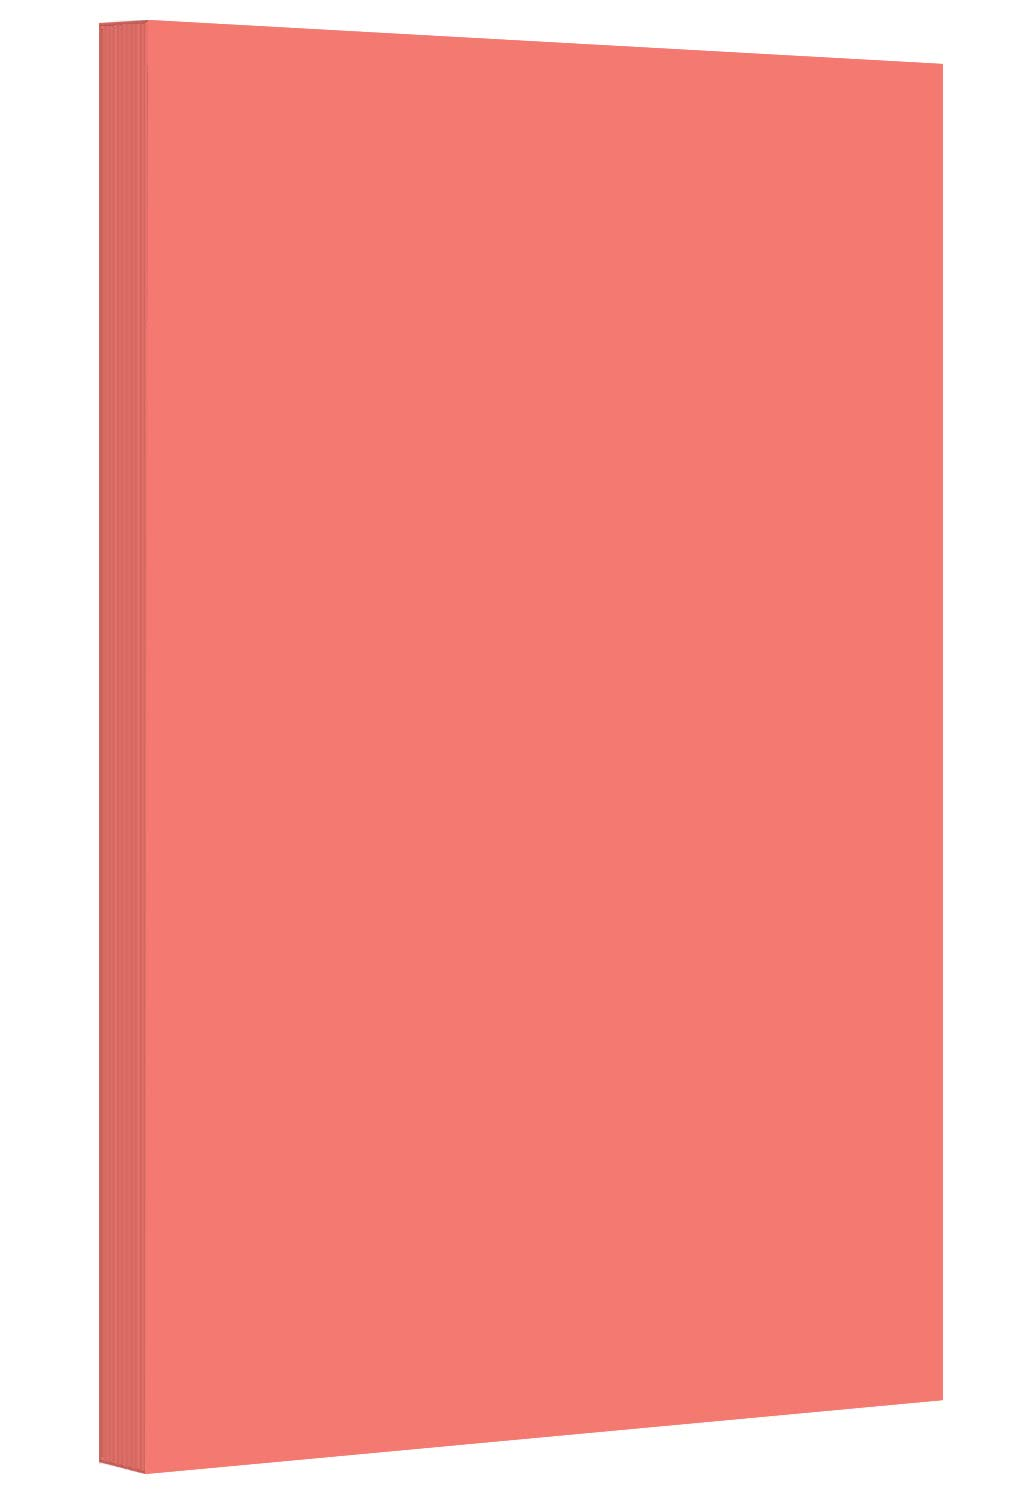 Salmon - Pastel Color Paper 20lb. Size 8.5 X 14 Legal/Menu Size - 500 Per Pack by S Superfine Printing